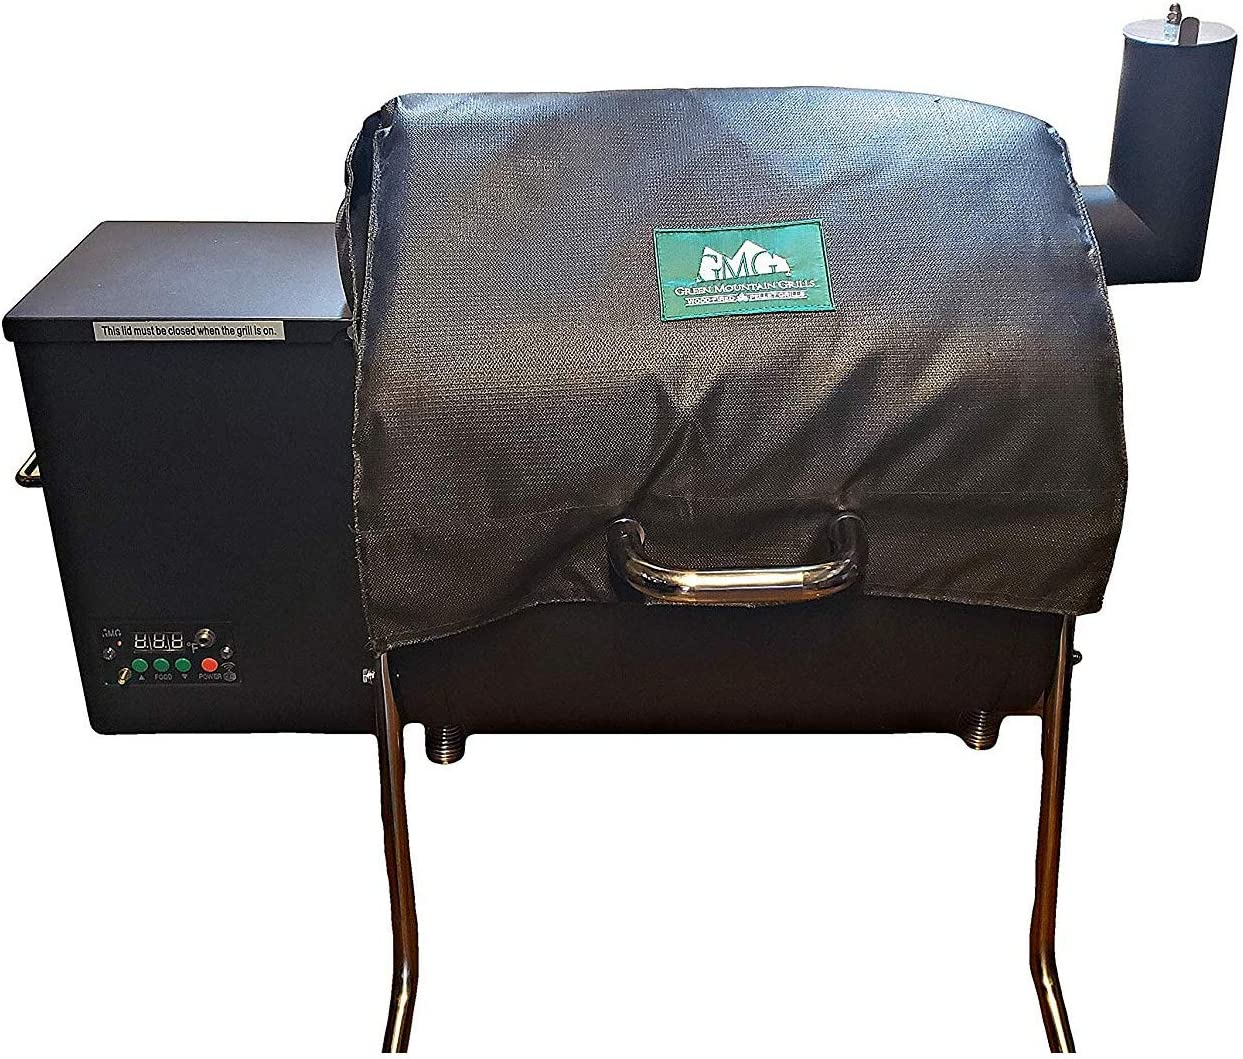 The Green Mountain Grills 6012 Davy Crockett Heavy-Duty Weather-Resistant Insulated BBQ Grill